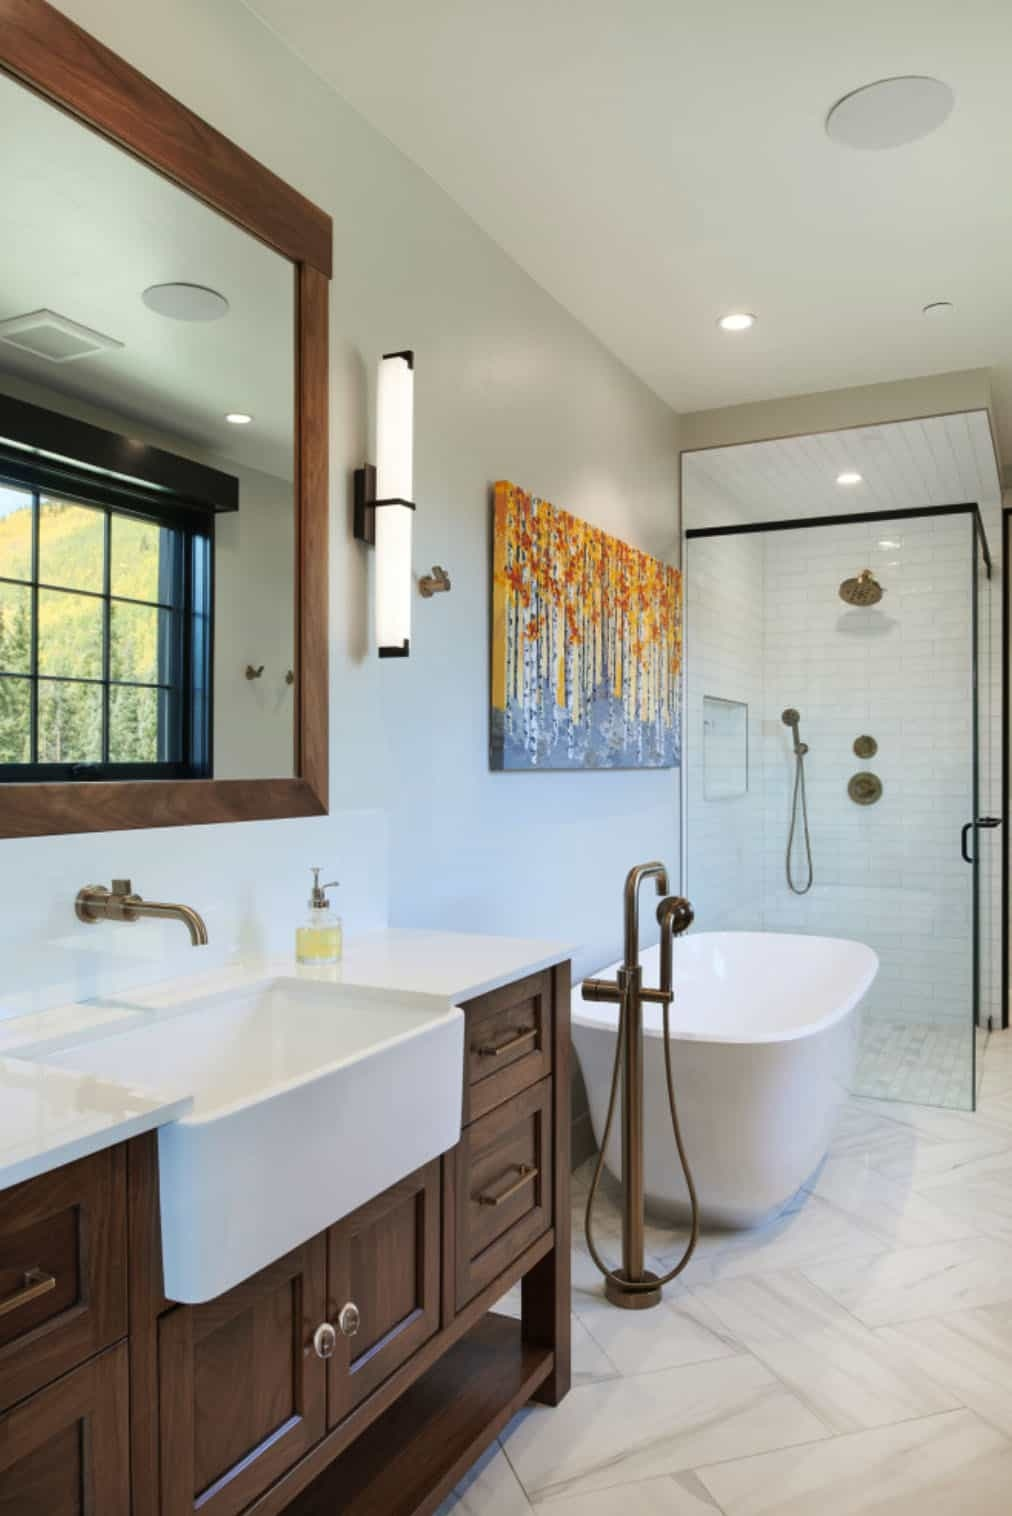 There's plenty of space in this bathroom for both a freestanding tub and a glass walk-in shower